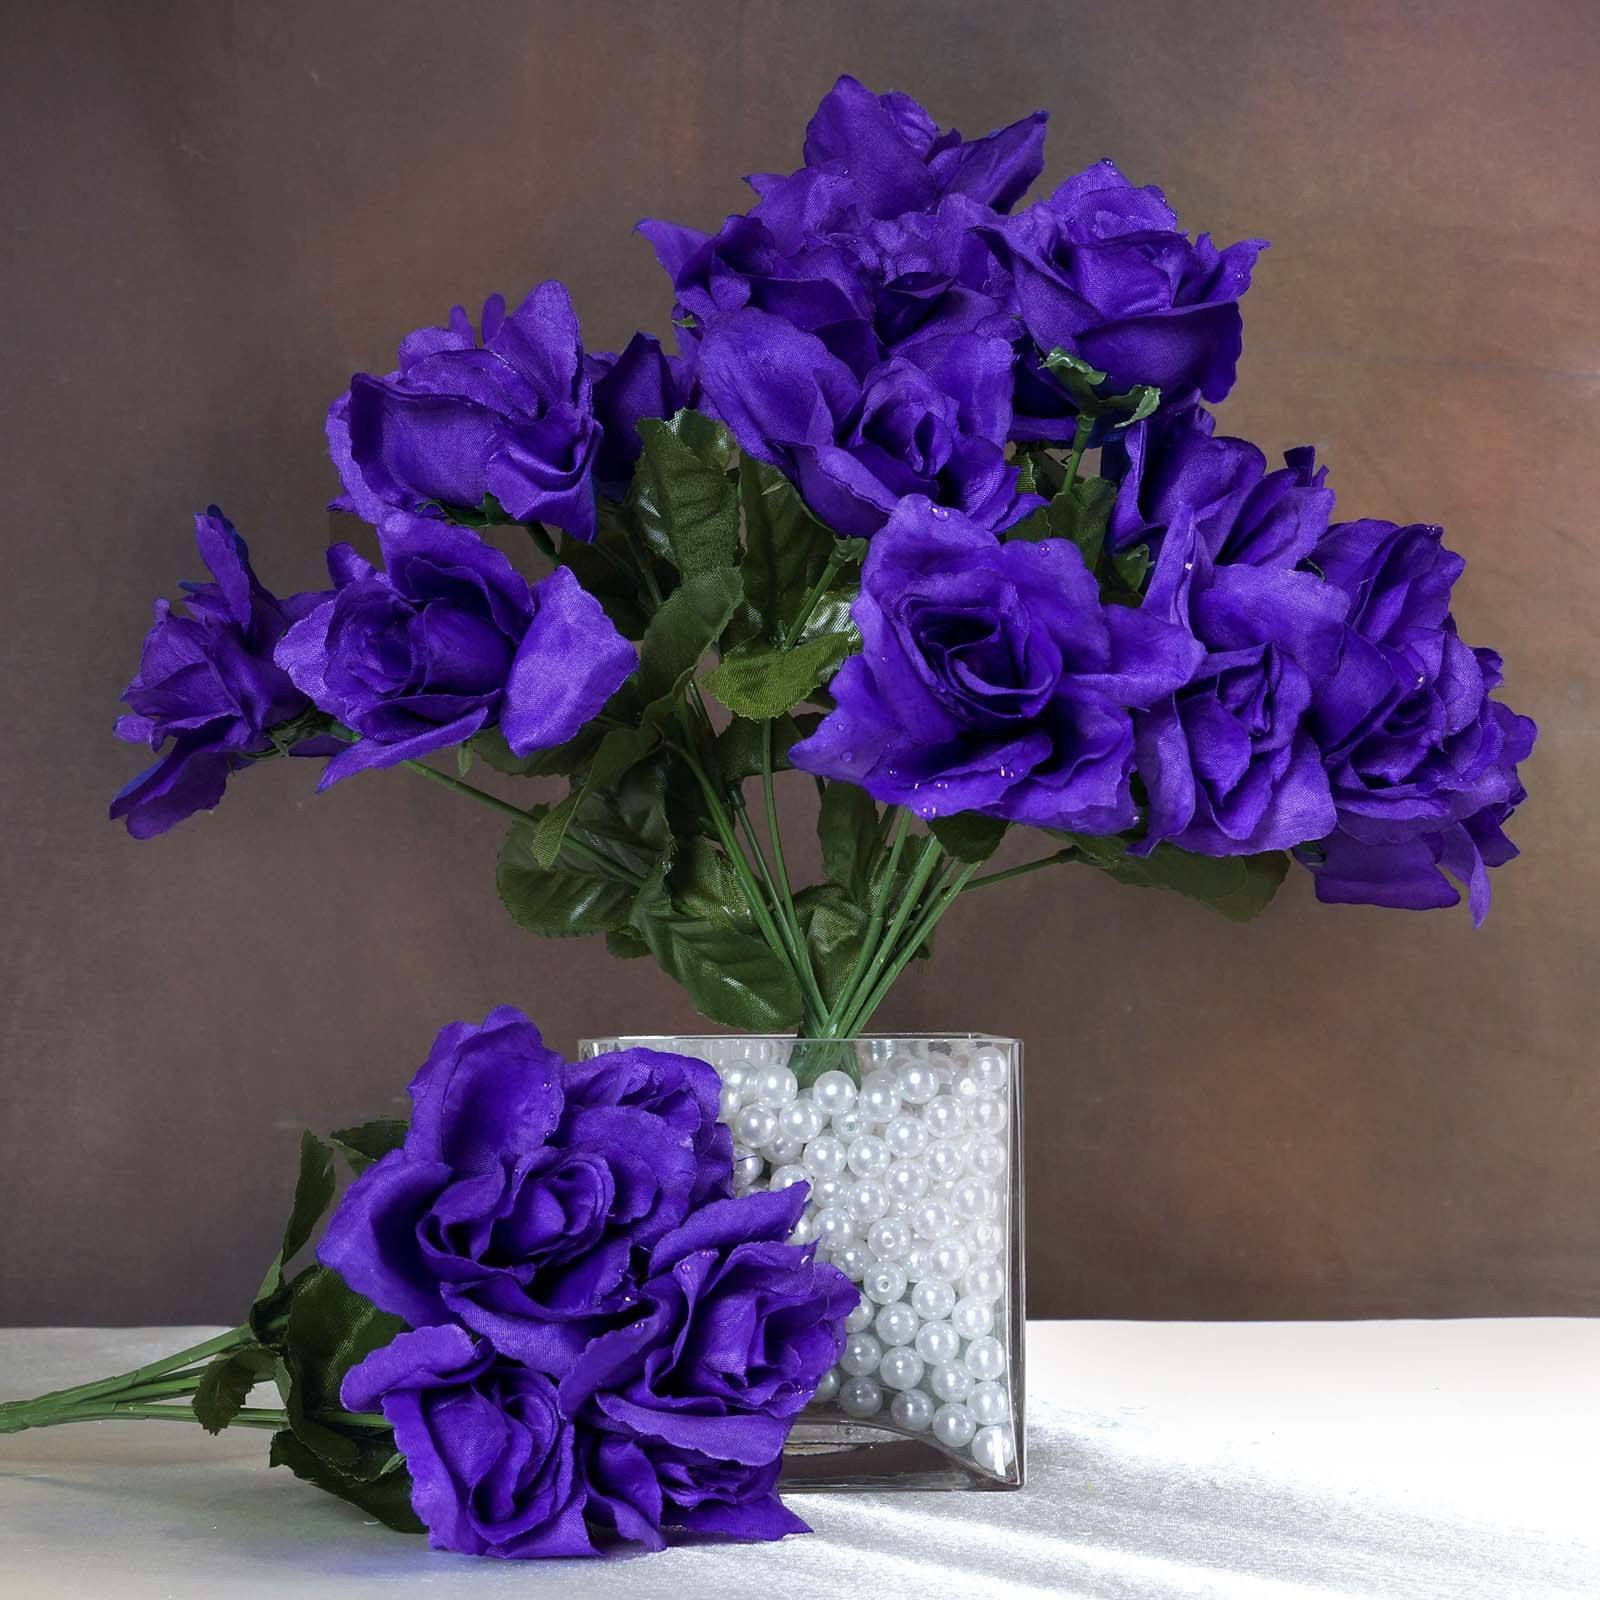 84 Artificial Silk Open Roses - Purple | eFavorMart